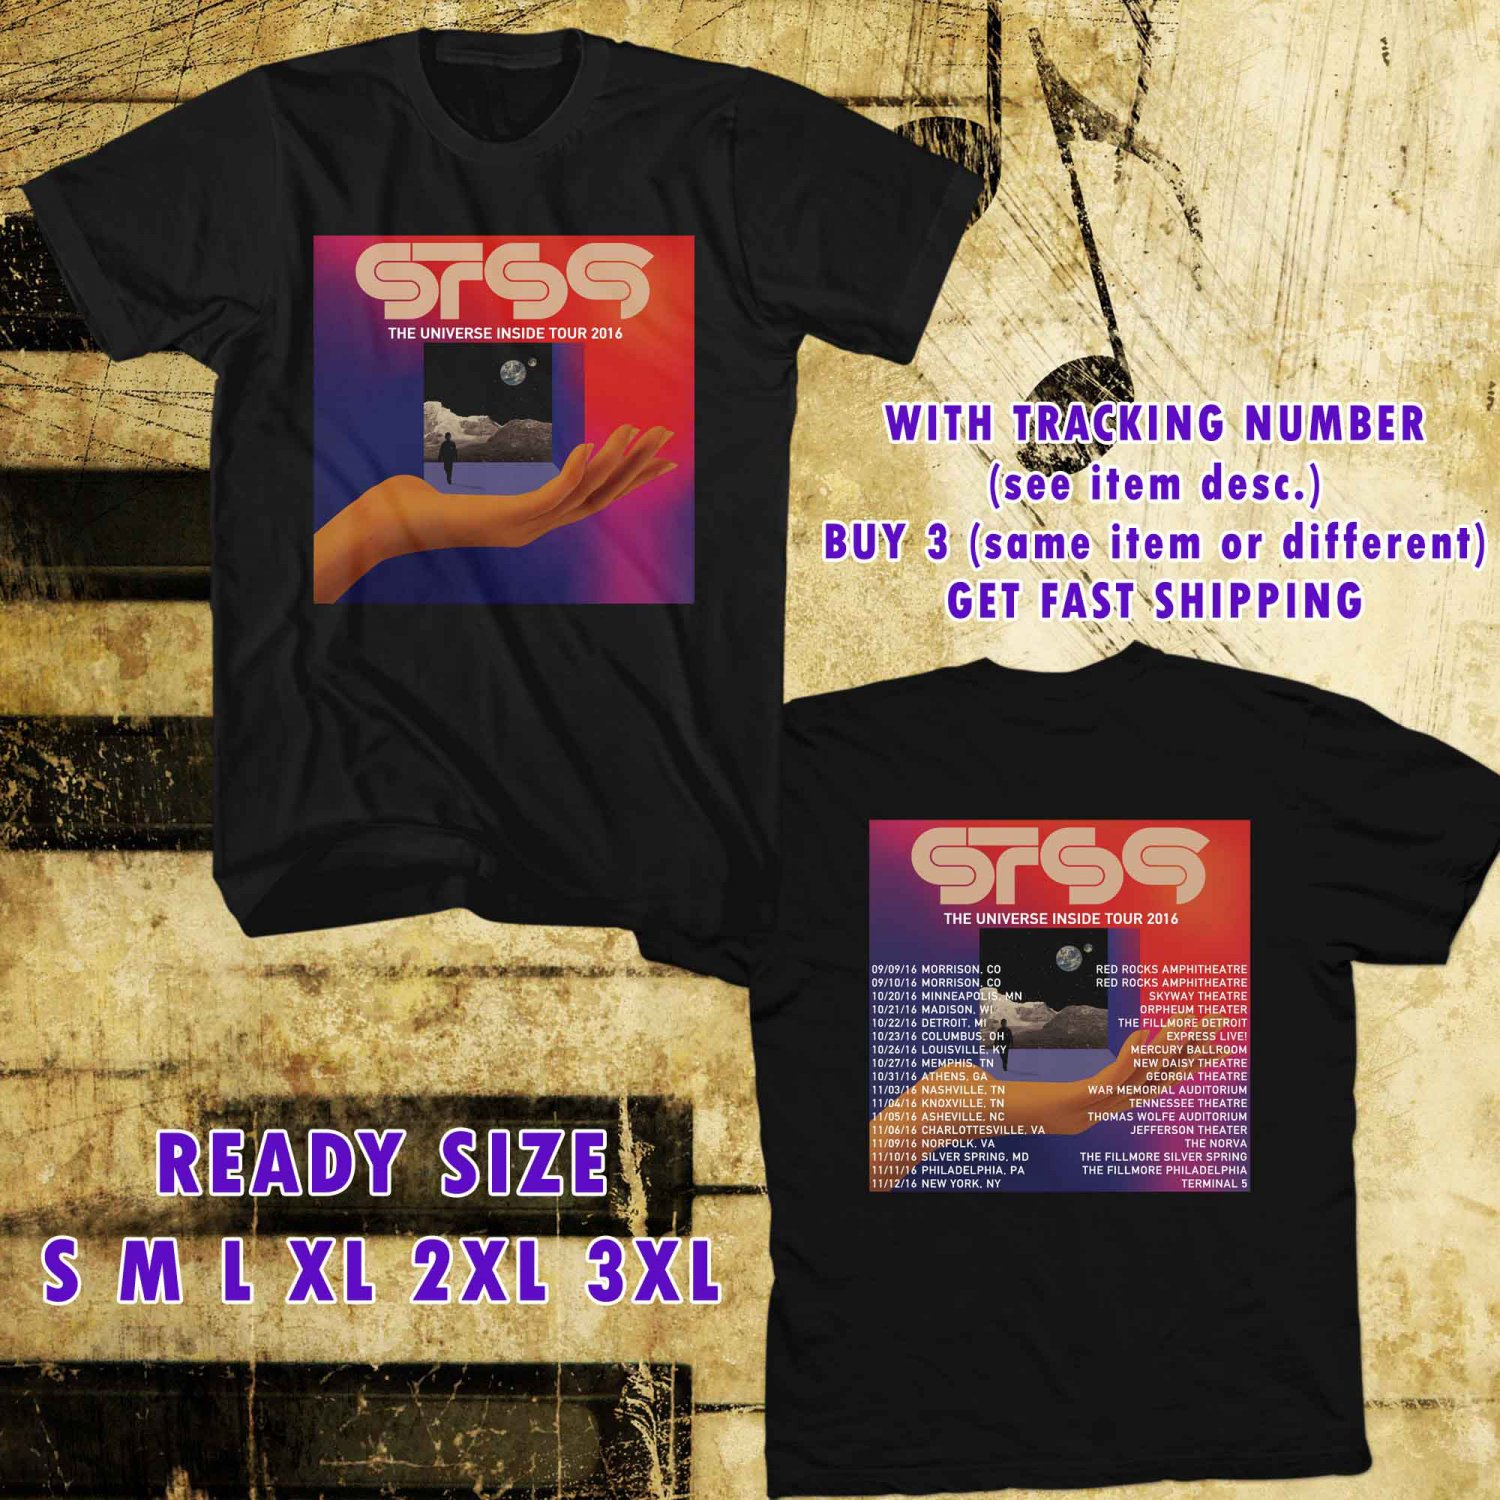 WOW STS9 THE UNIVERSE INSIDE TOUR 2016 BLACK TEE S-3XL ASTR 553